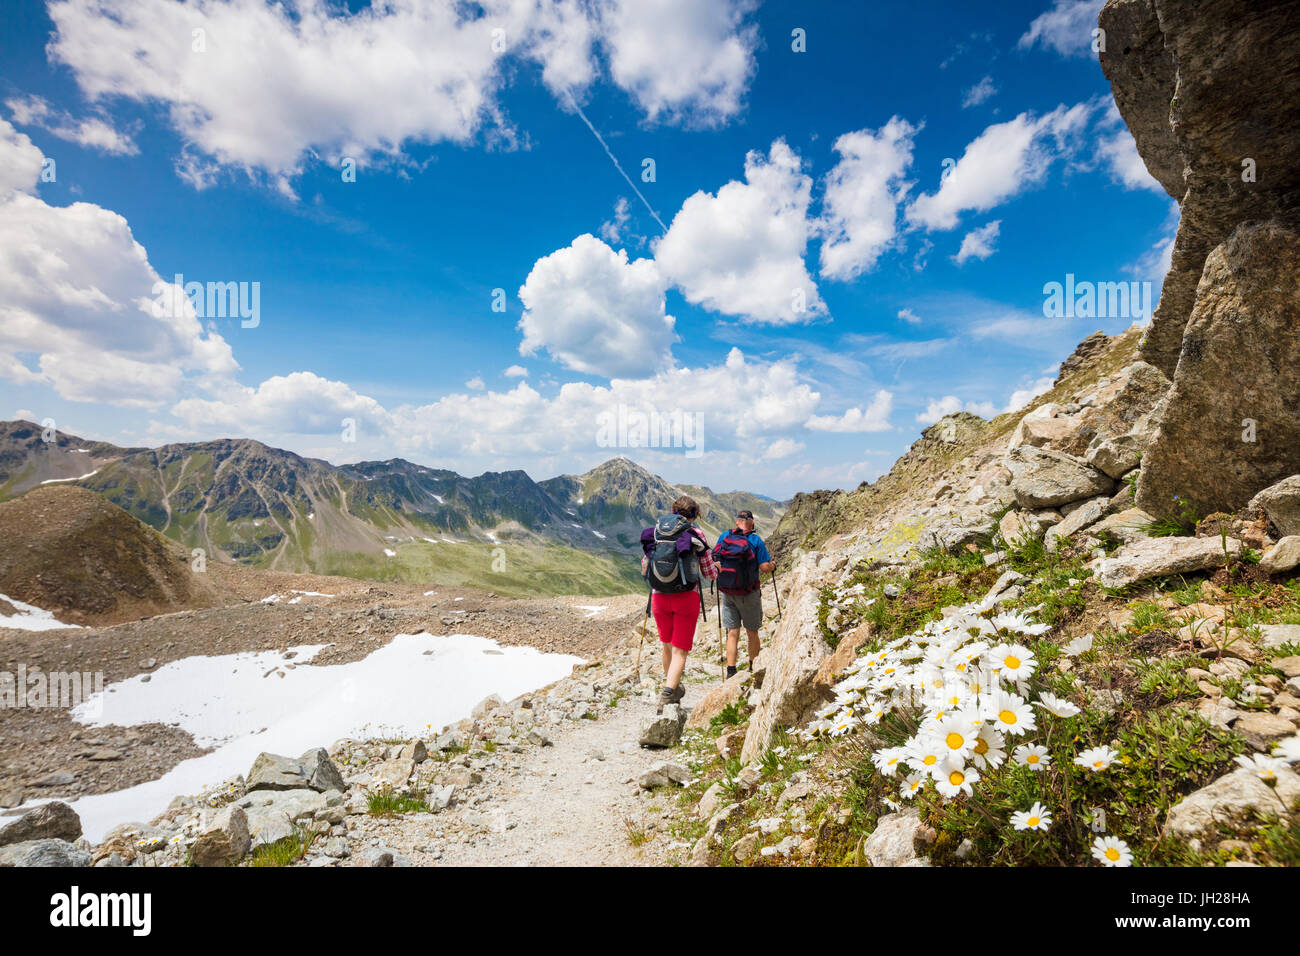 Hikers surrounded by rocky peaks and flowering daisies, Joriseen, Jorifless Pass, canton of Graubunden, Engadine, - Stock Image